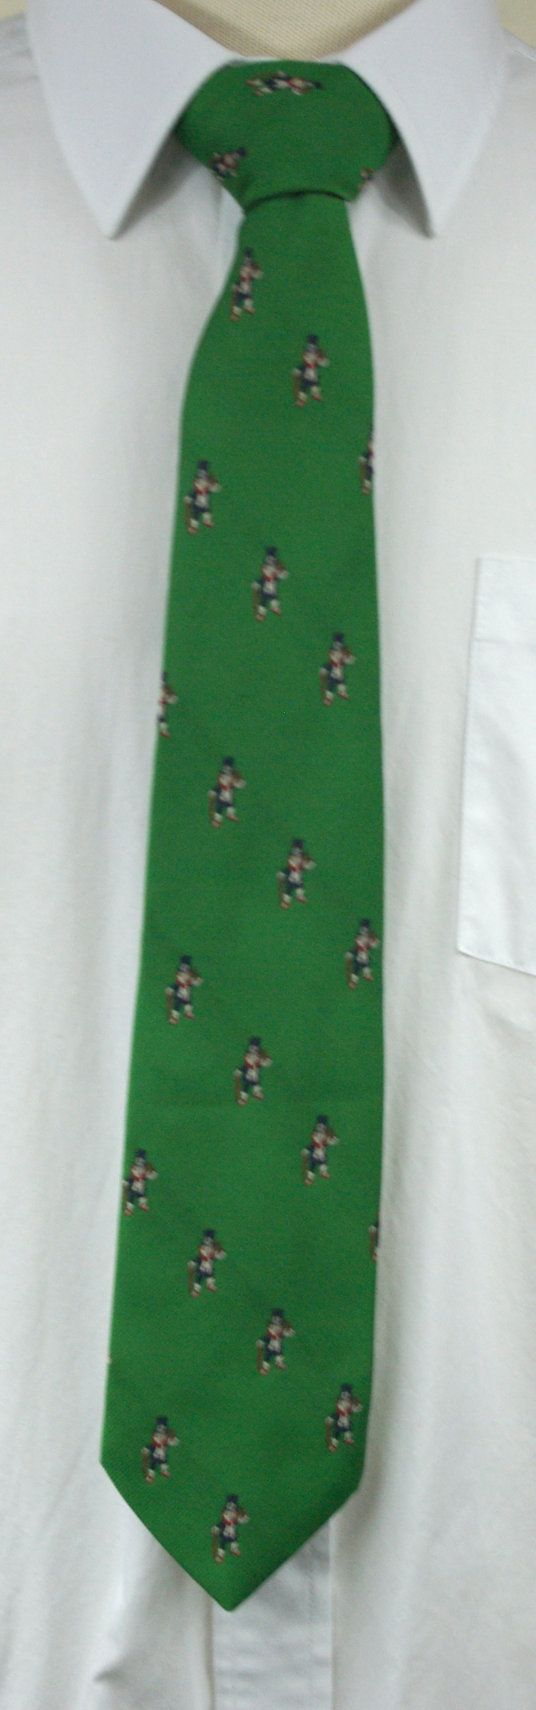 Vintage Leprechaun necktie by brickhousefashion on Etsy, $15.00